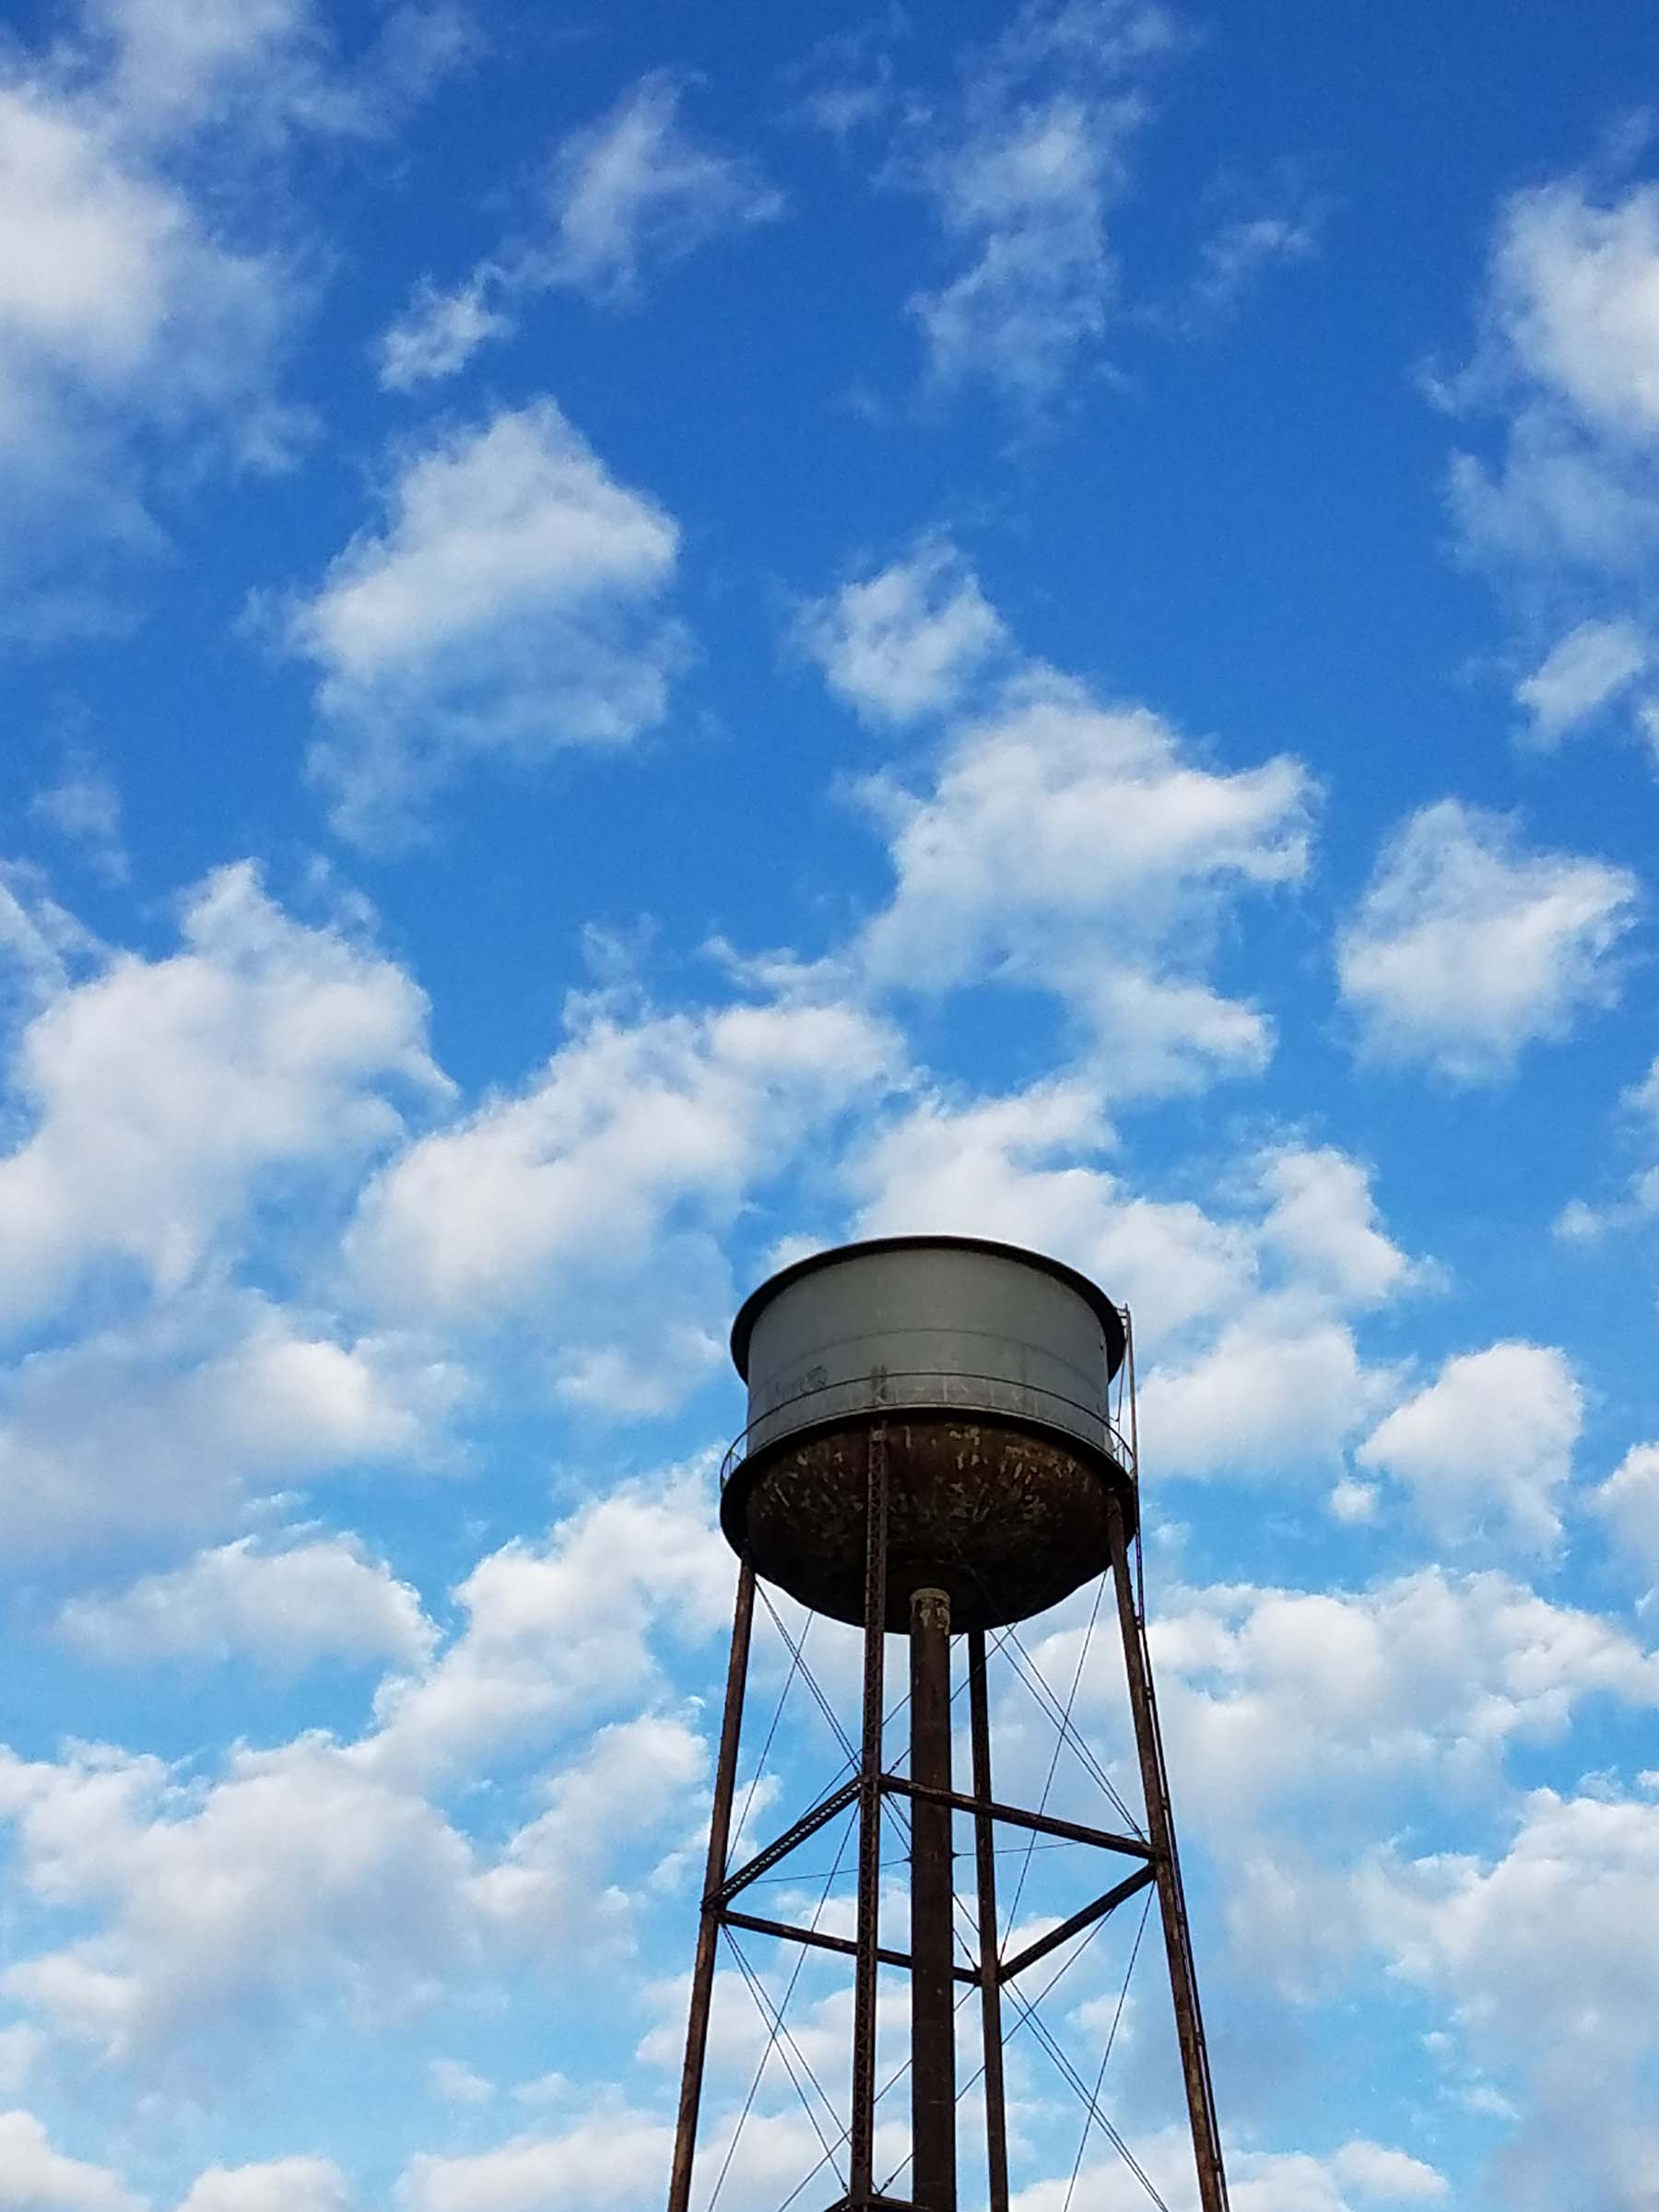 A water tower against a blue sky, filled with white clouds.